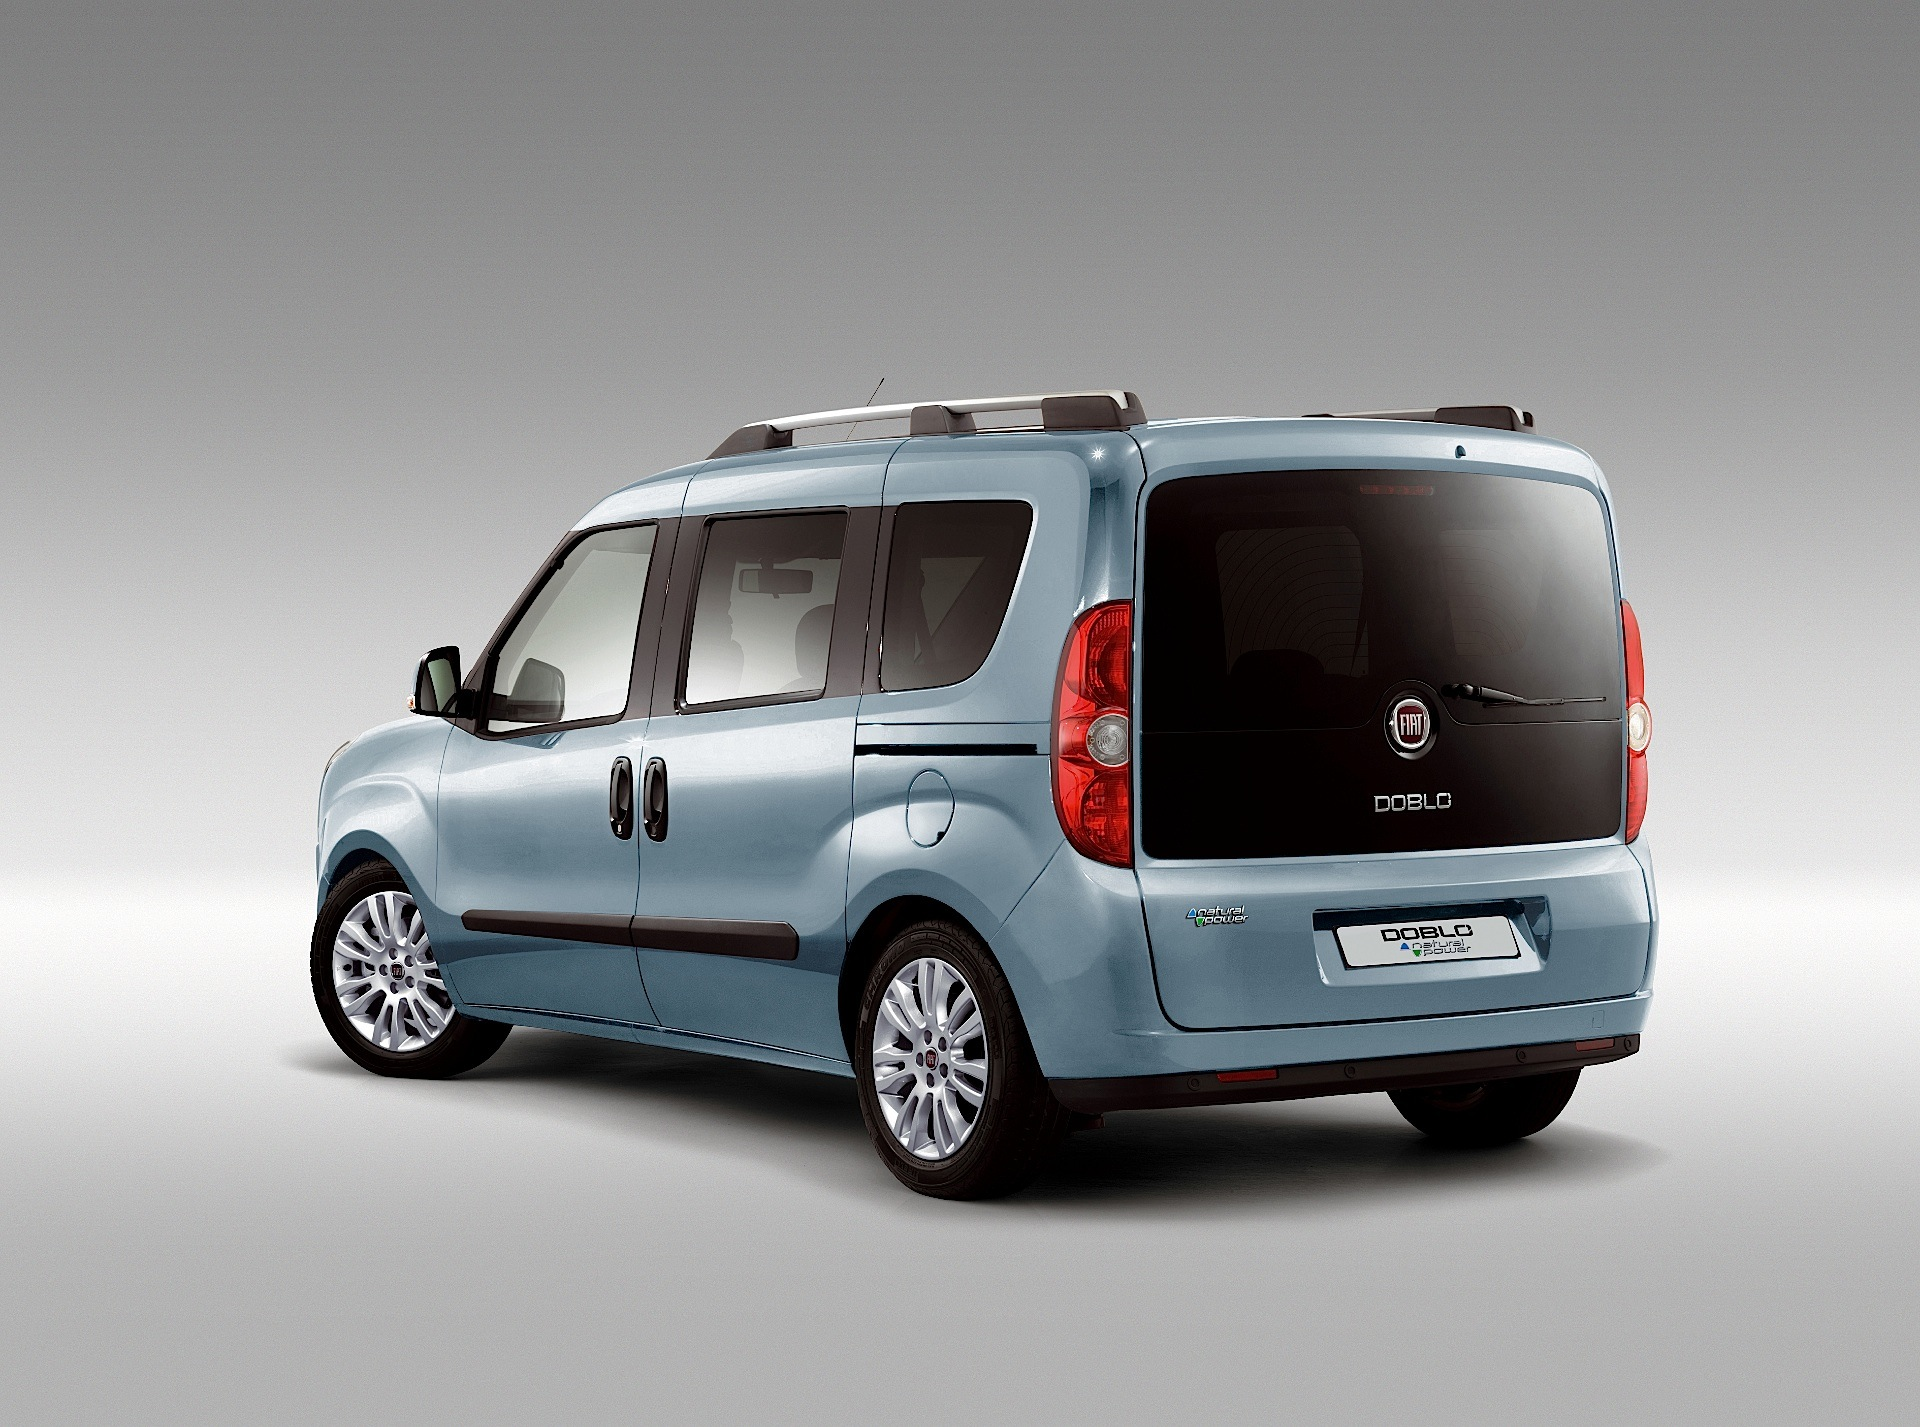 fiat doblo specs 2010 2011 2012 2013 2014 2015 2016 2017 2018 autoevolution. Black Bedroom Furniture Sets. Home Design Ideas